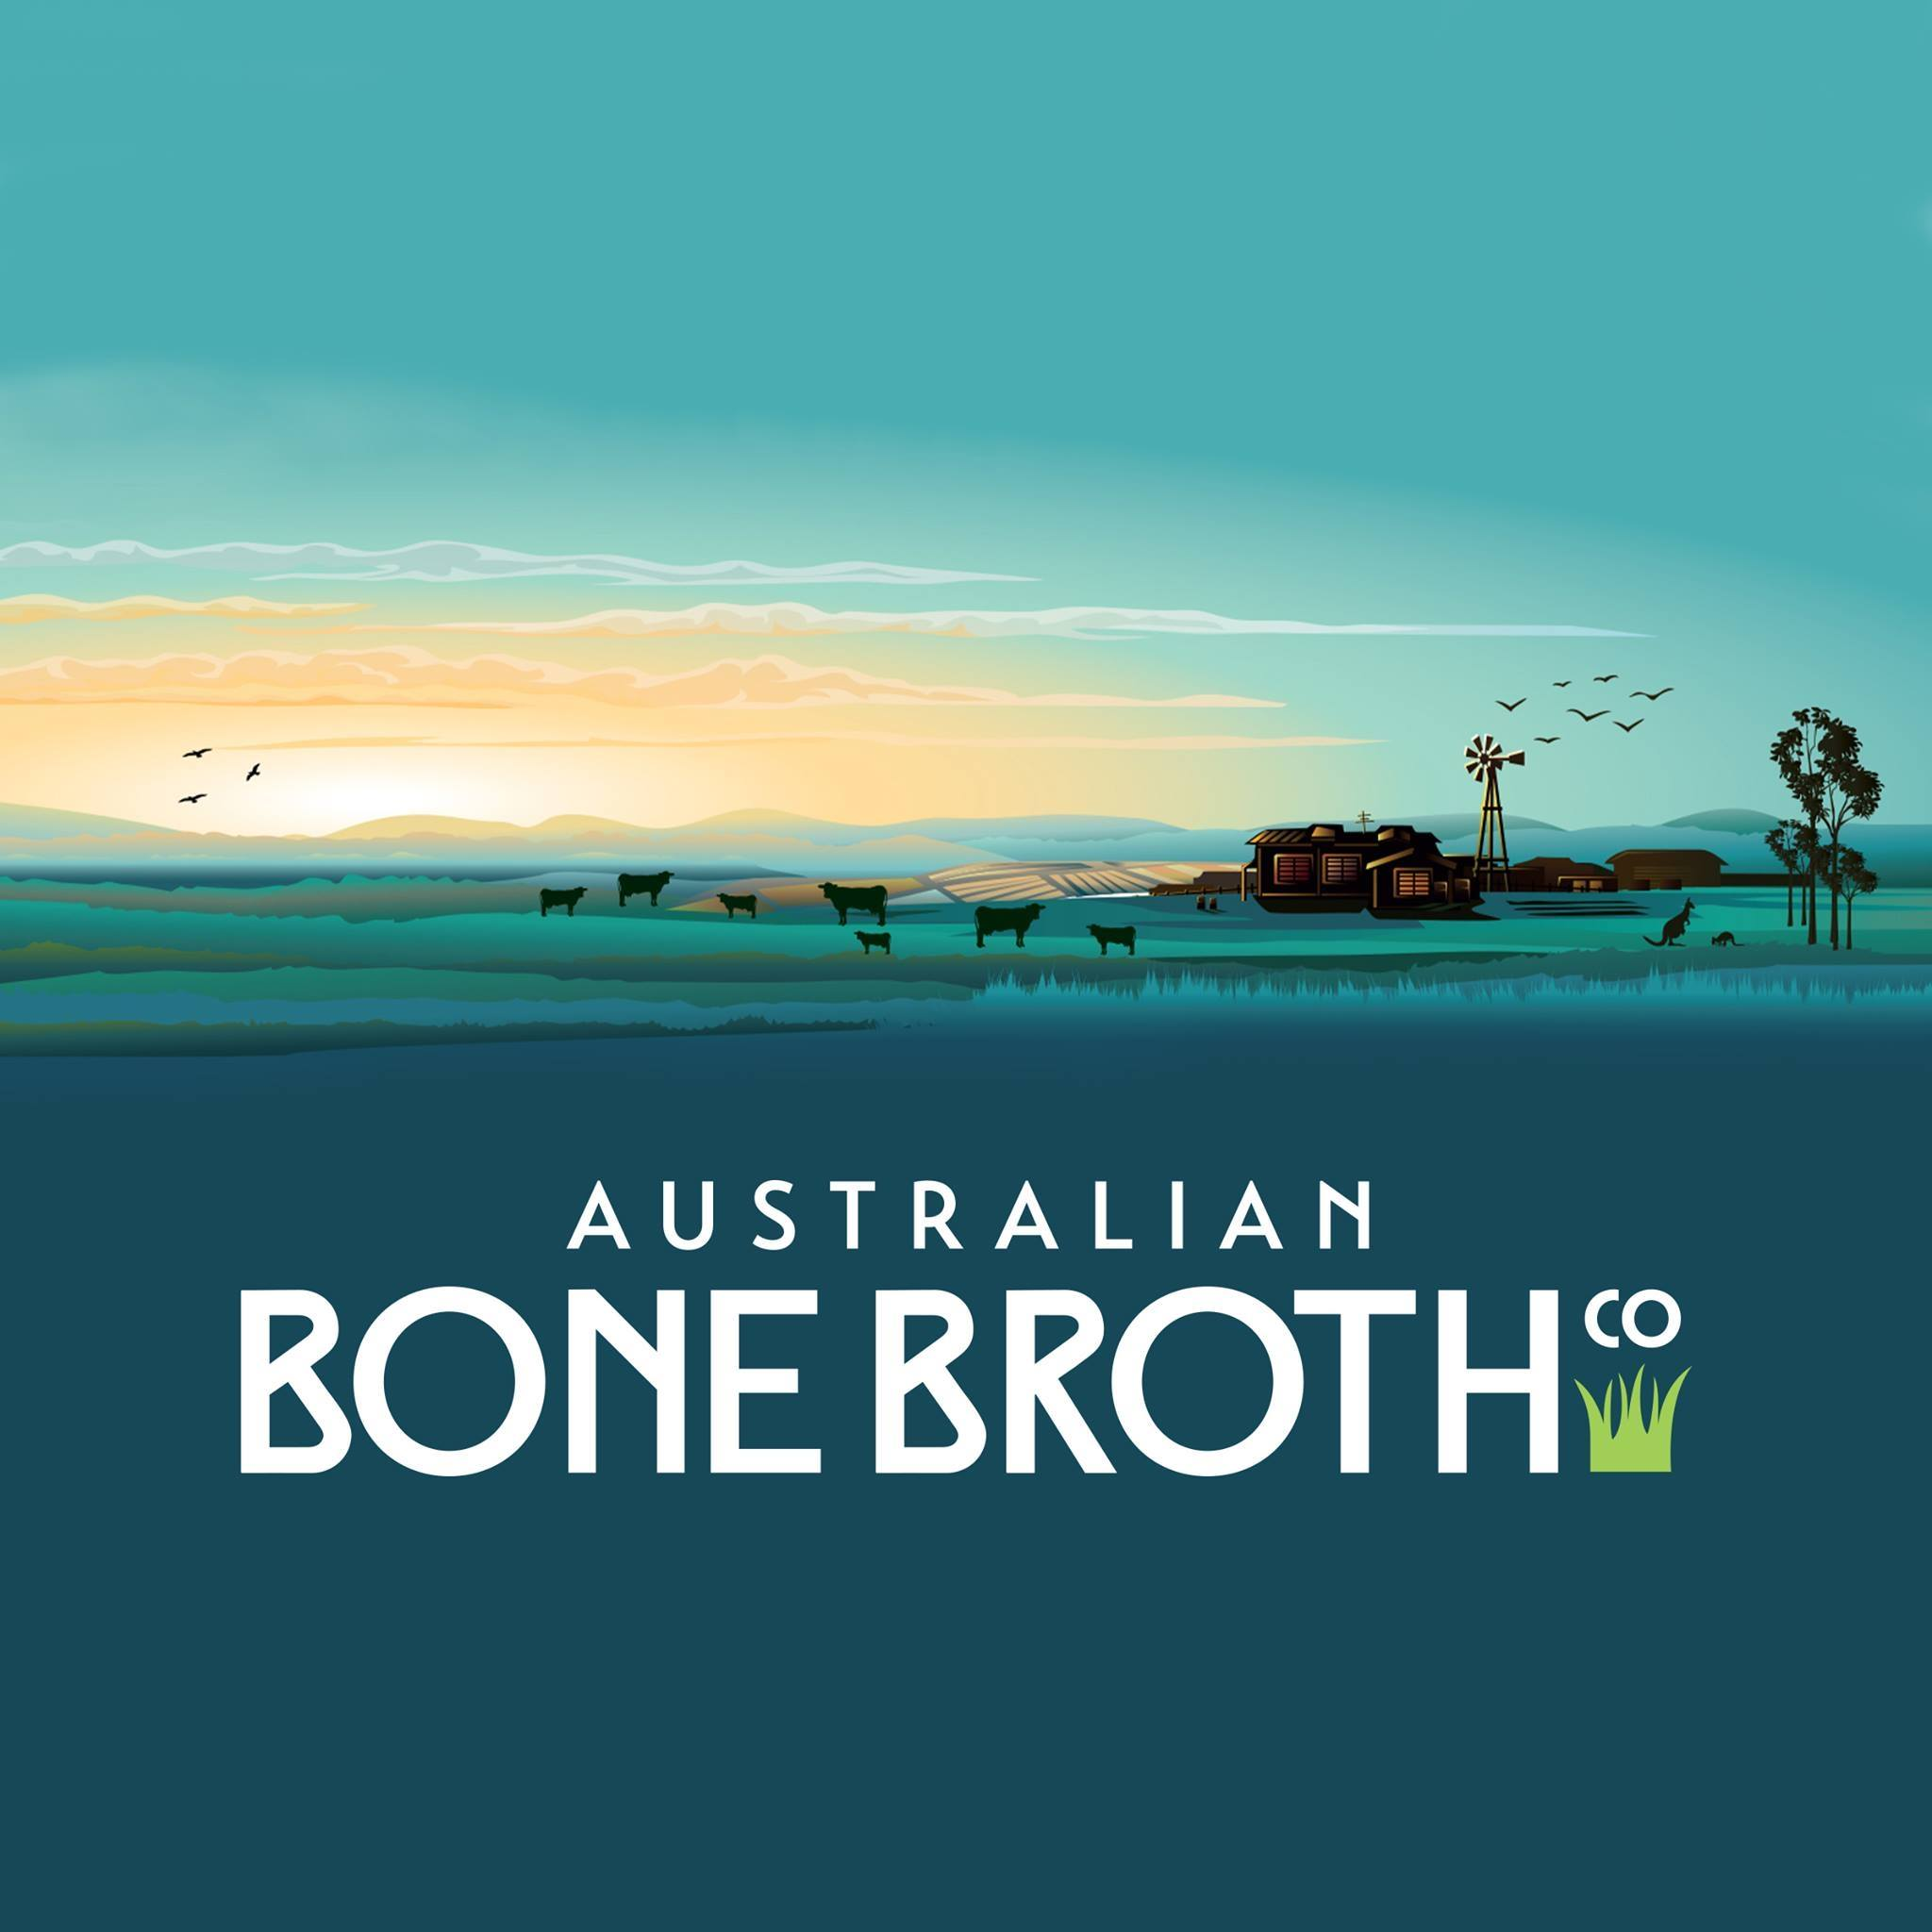 Australian Bone Broth